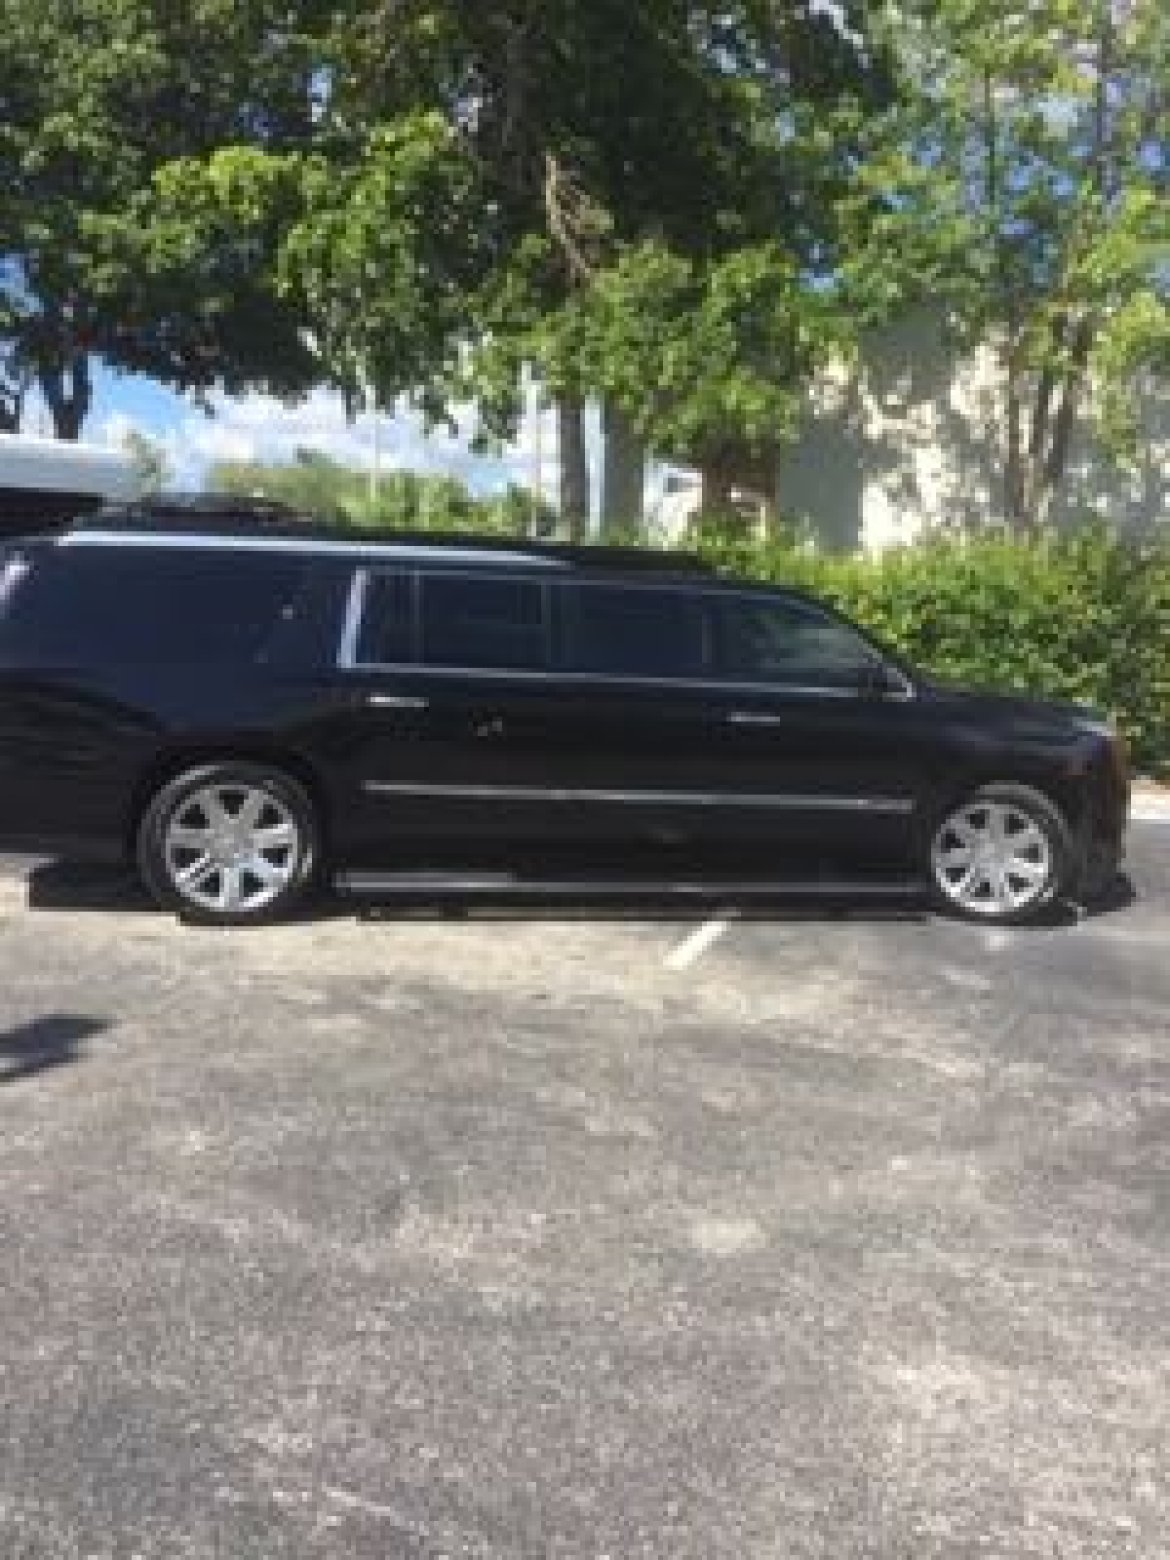 CEO SUV Mobile Office for sale: 2015 Cadillac escalade by ecb